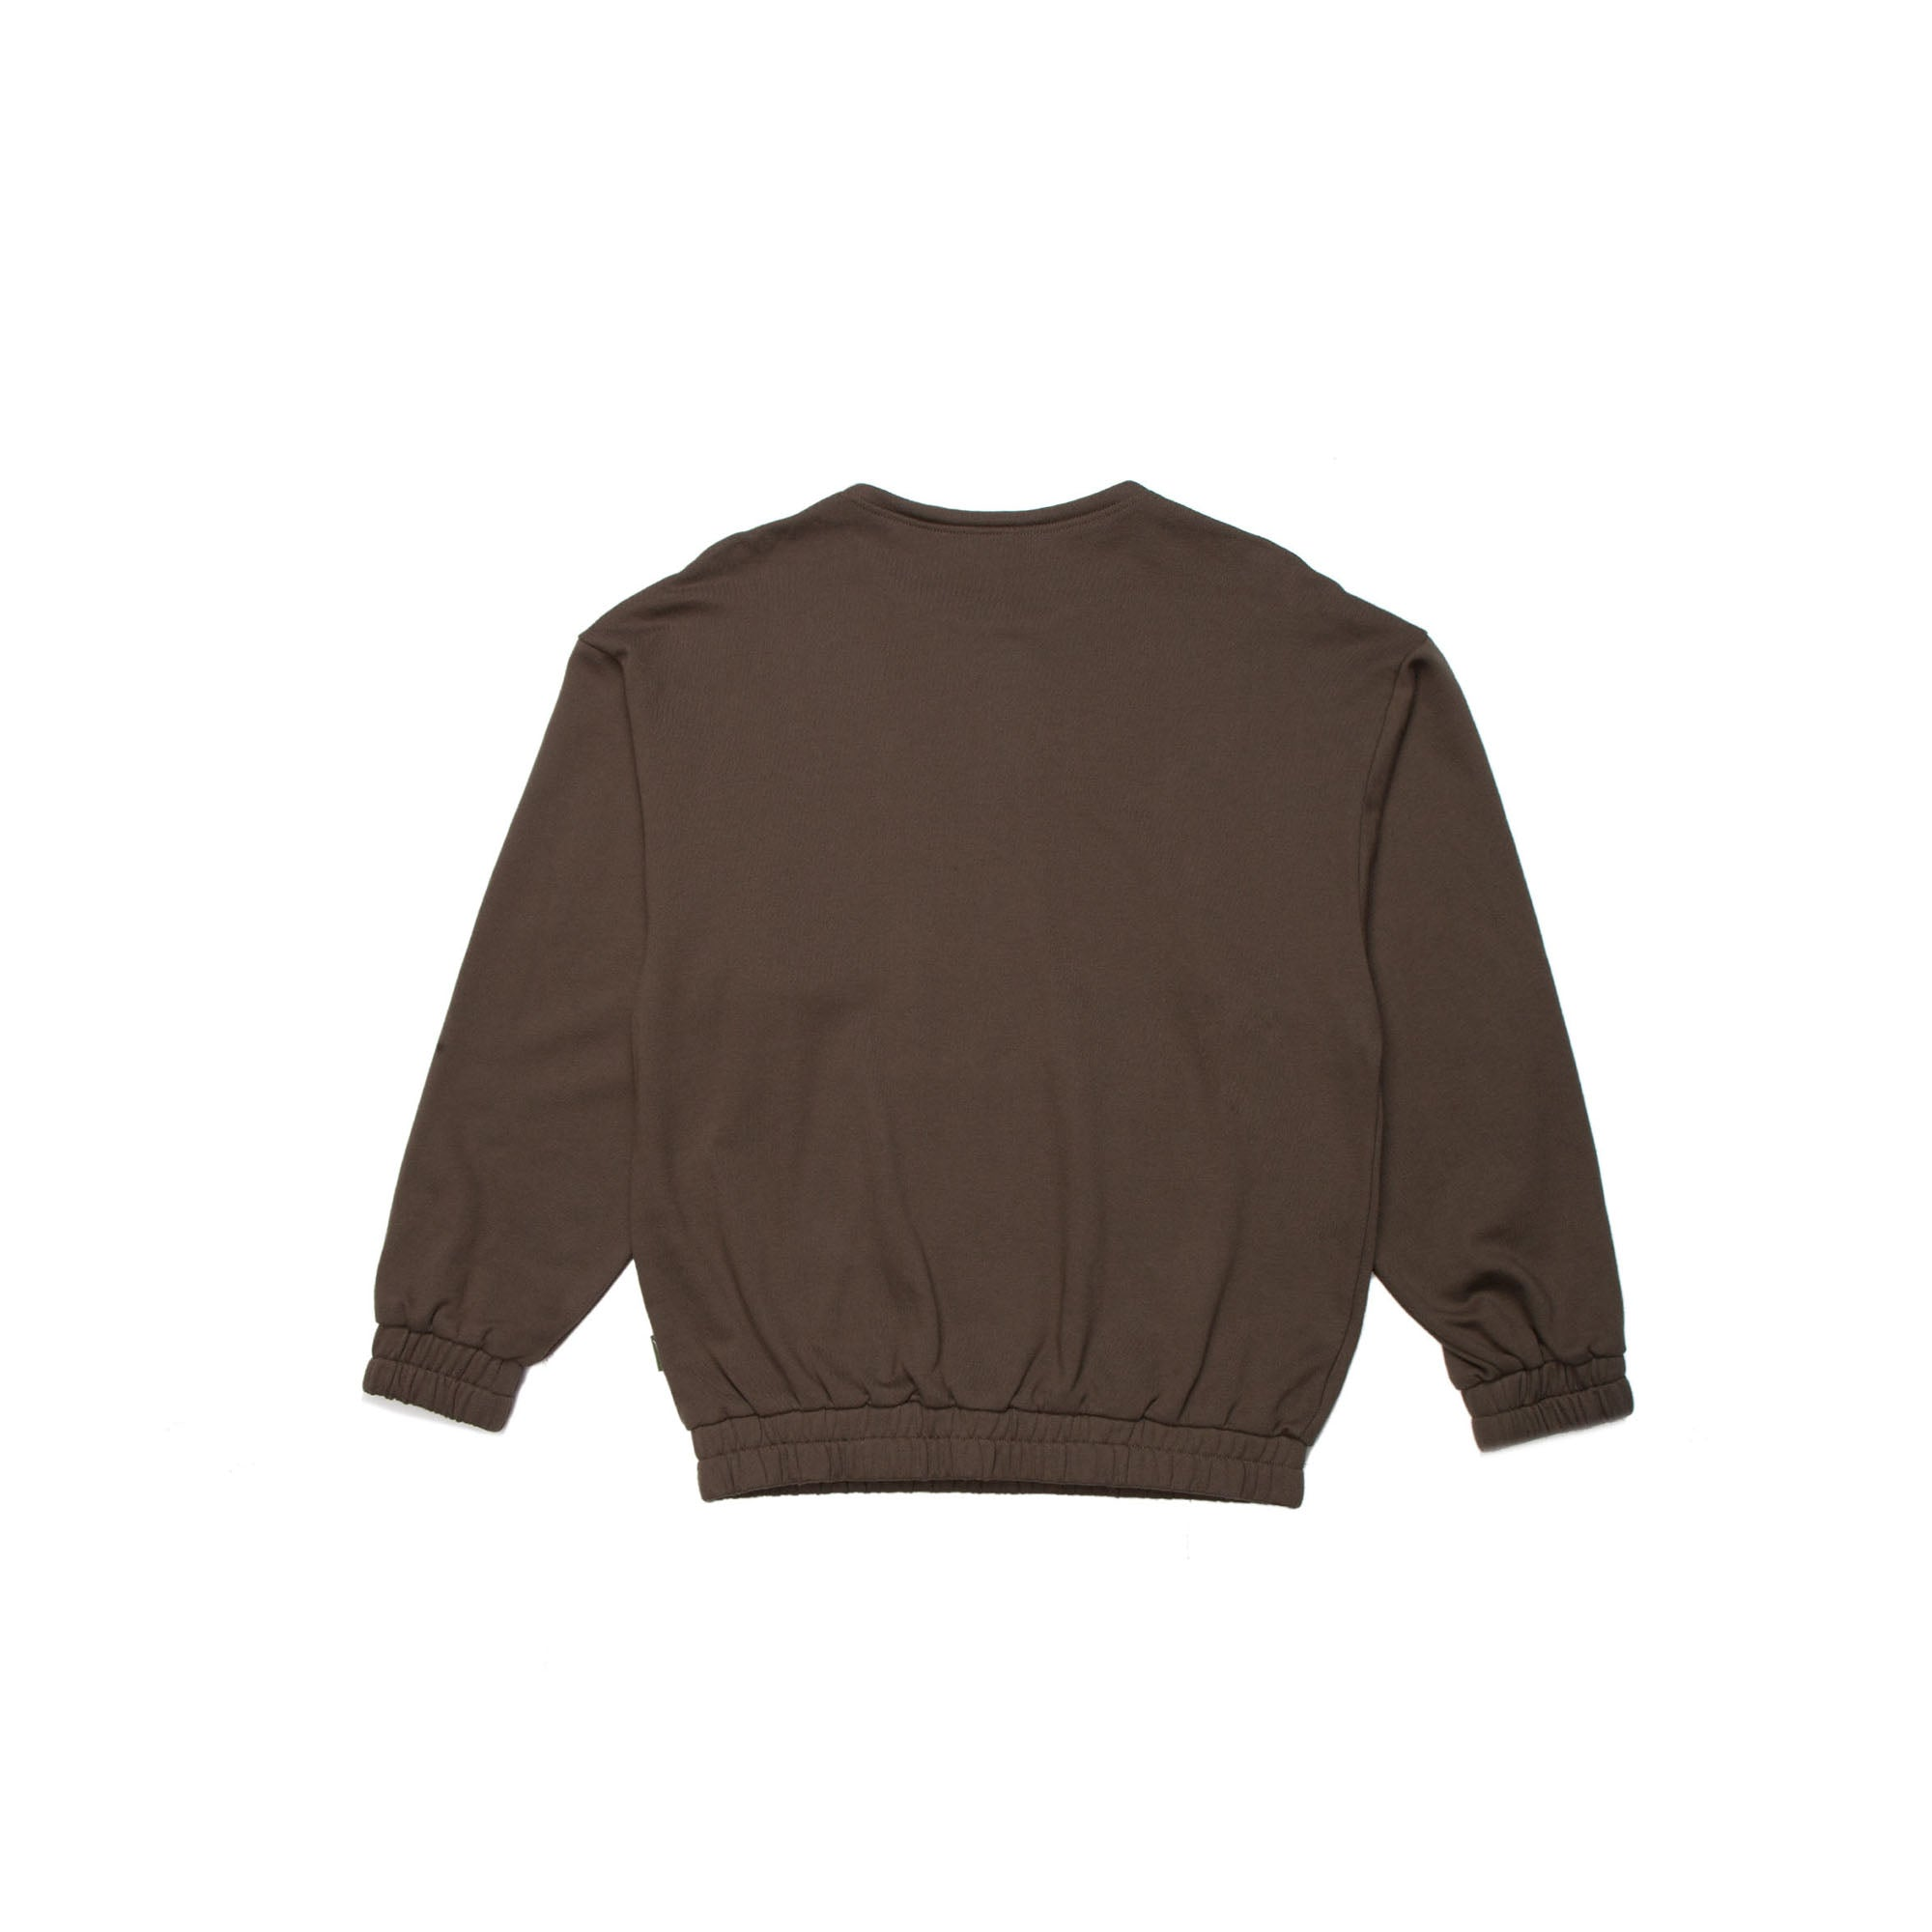 Rhyss Sweater - Olive